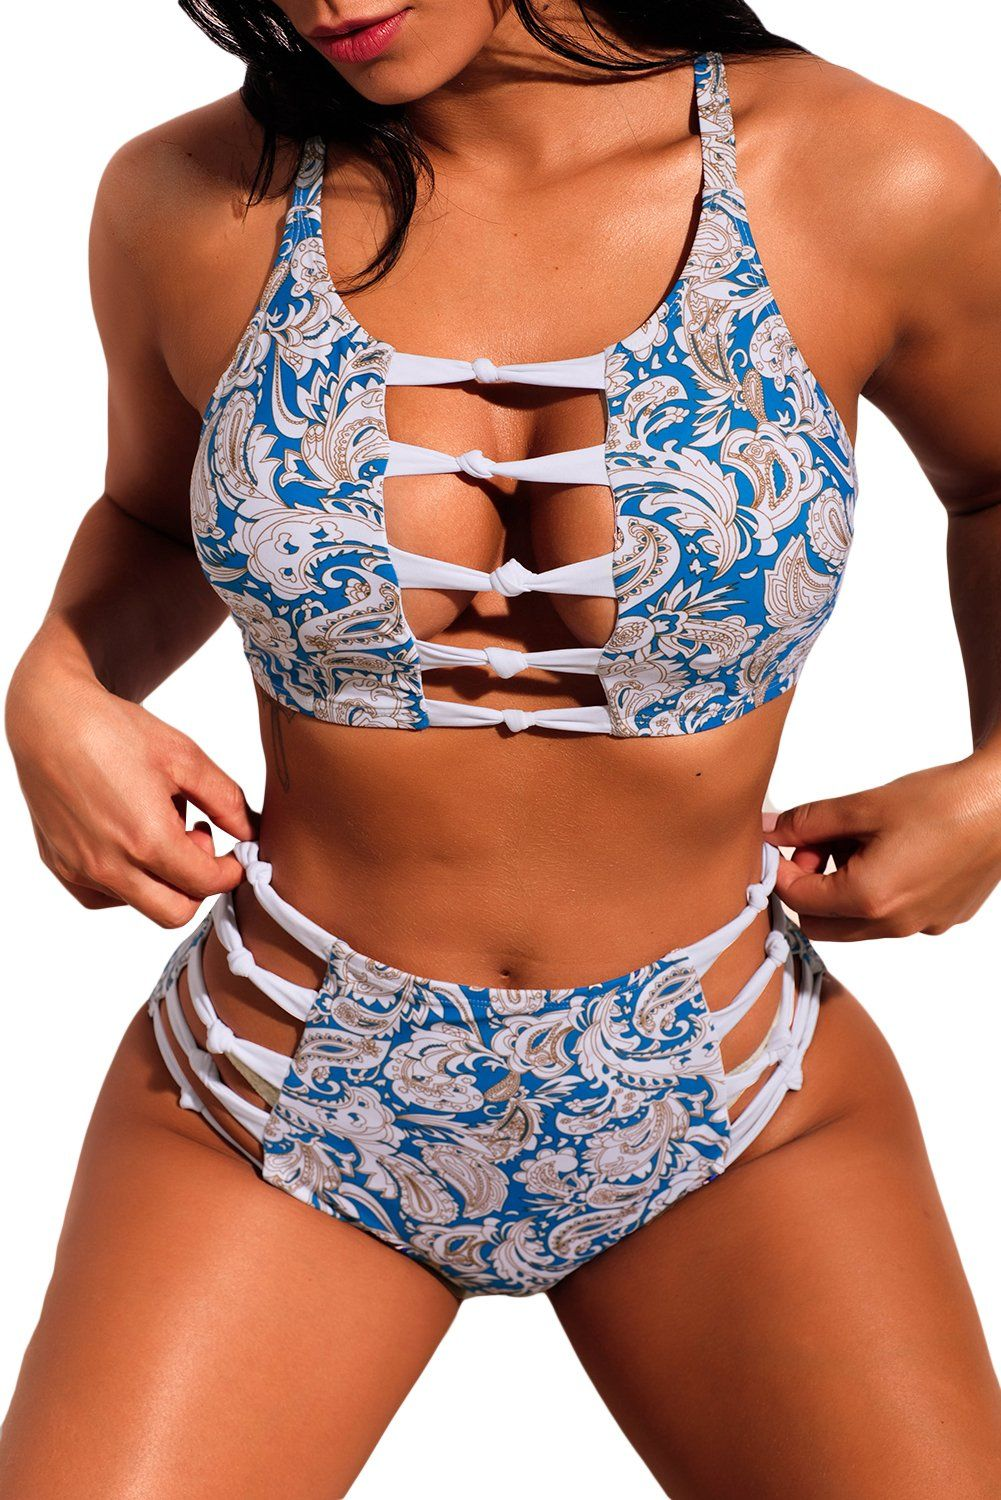 5950141ed5e75 Cutout Boho Print High Waist Bikini Swimsuit in 2019